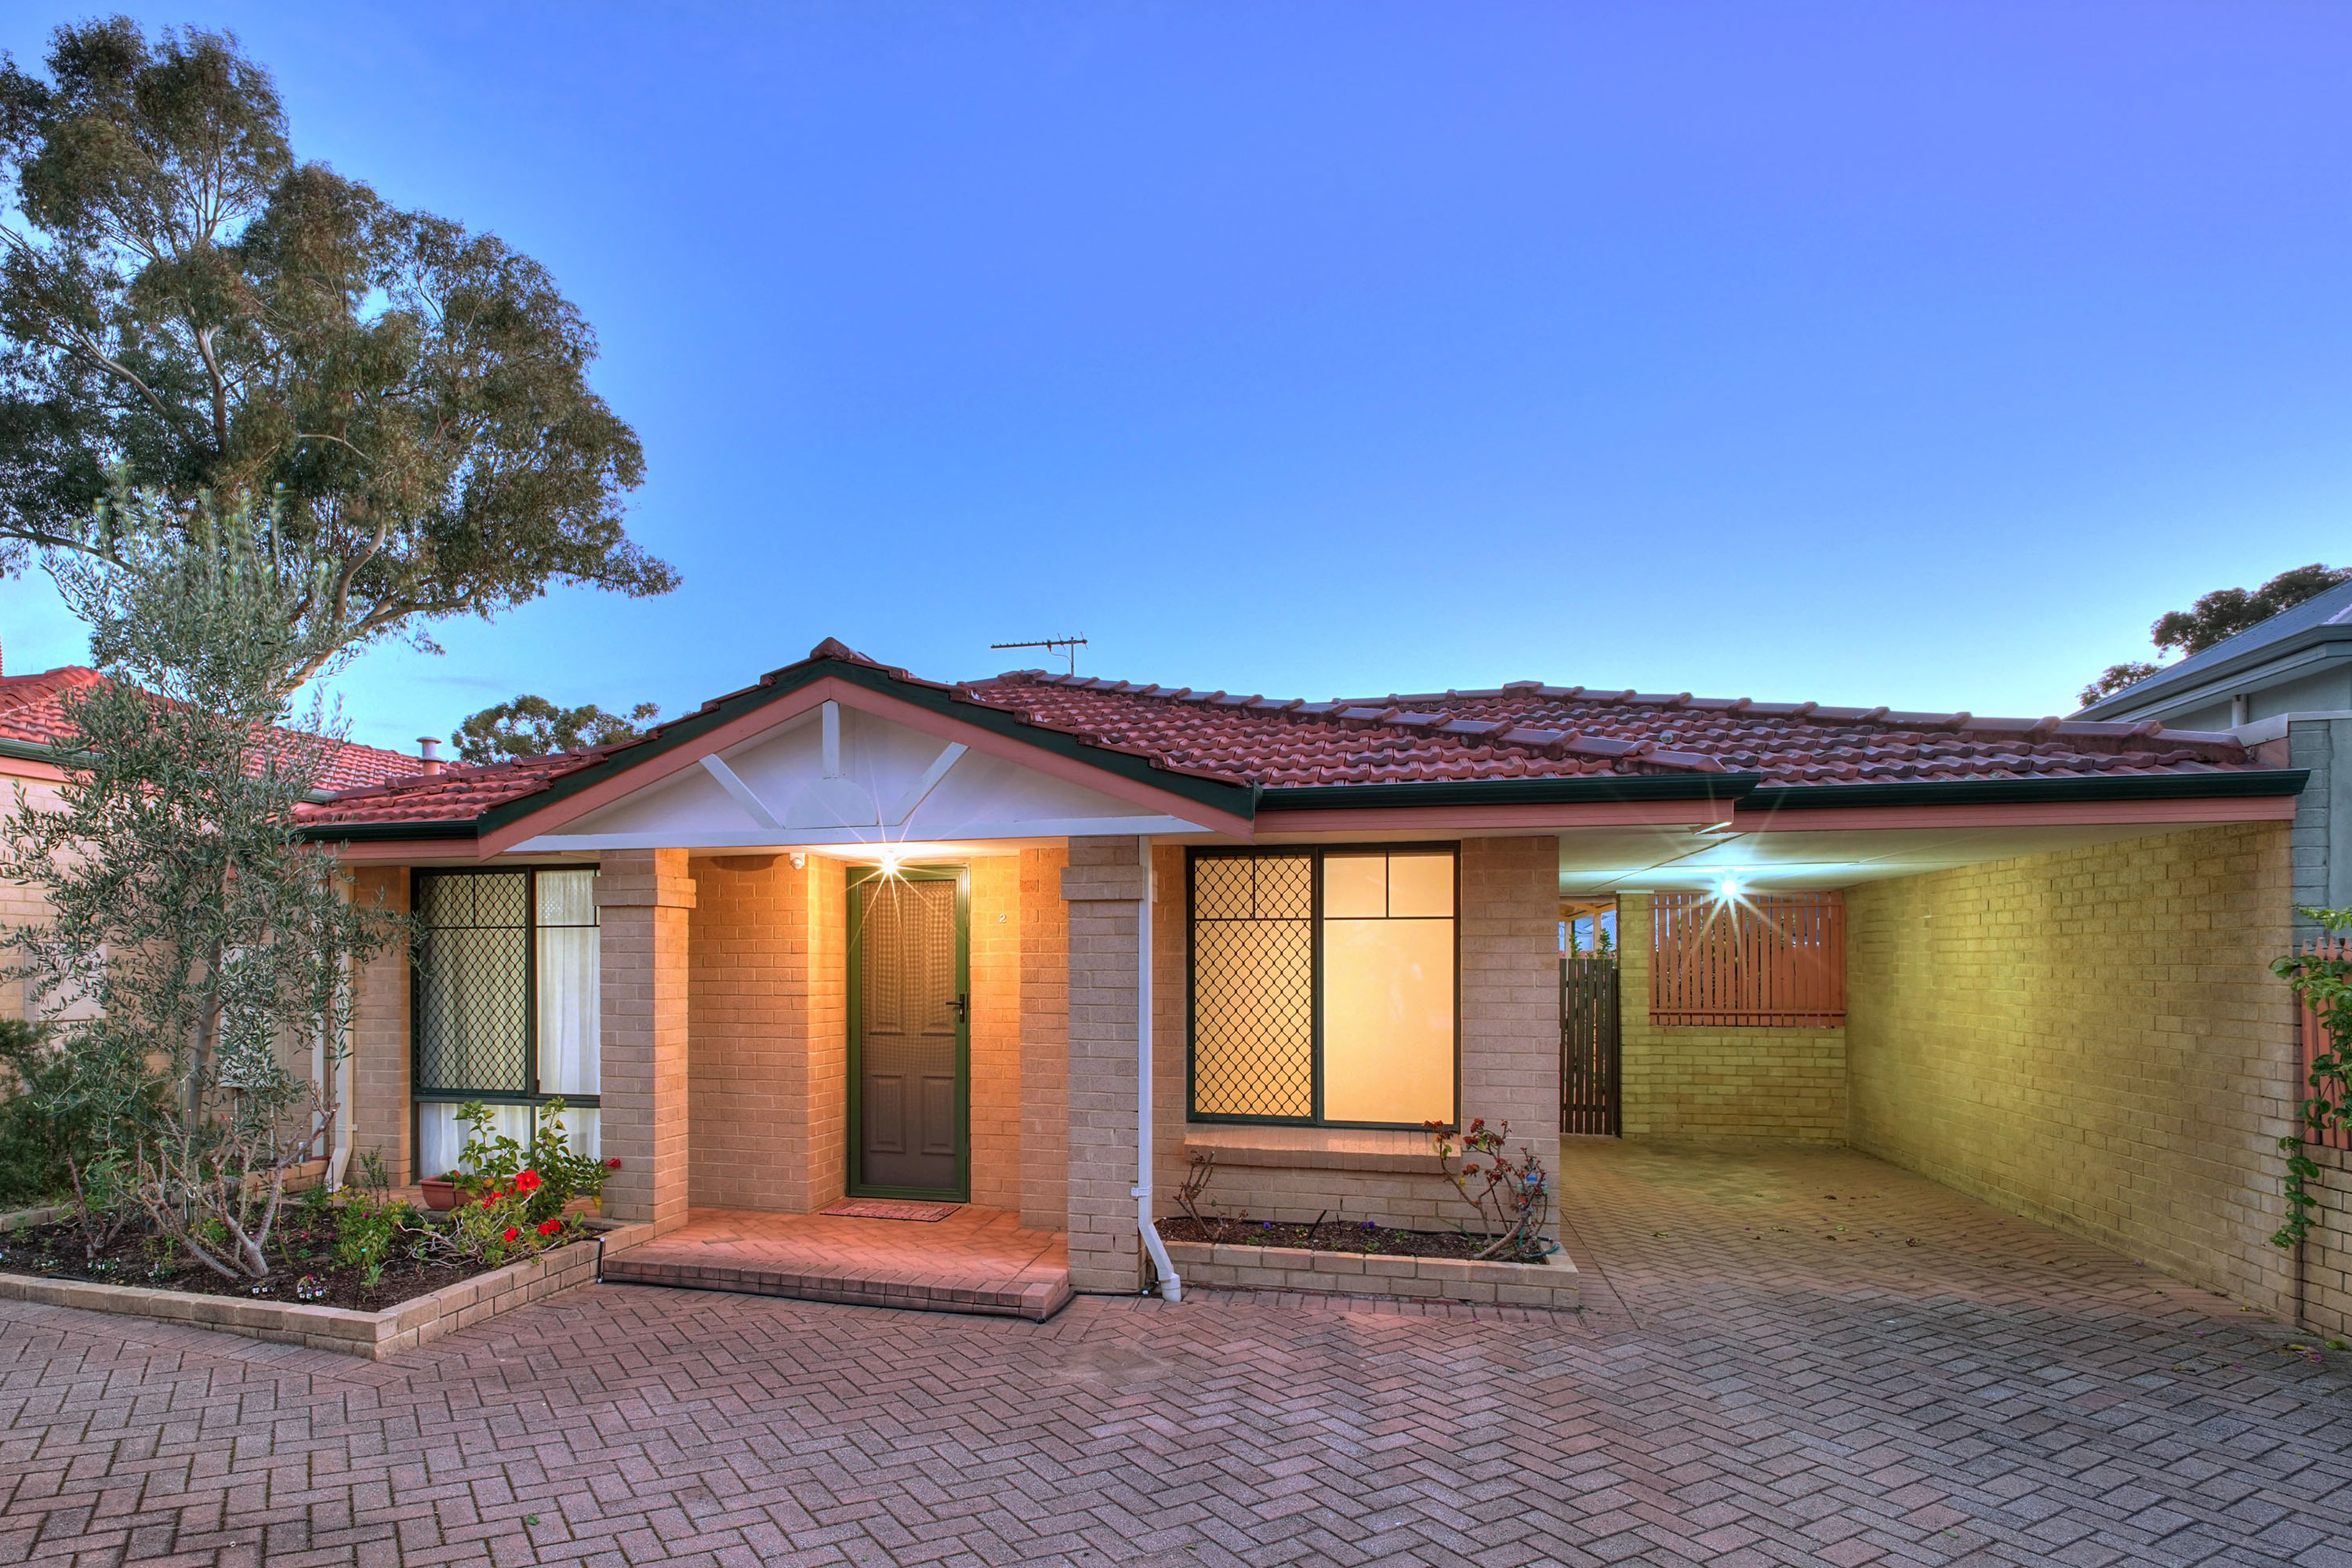 2/38 Kenilworth Street Maylands 6051